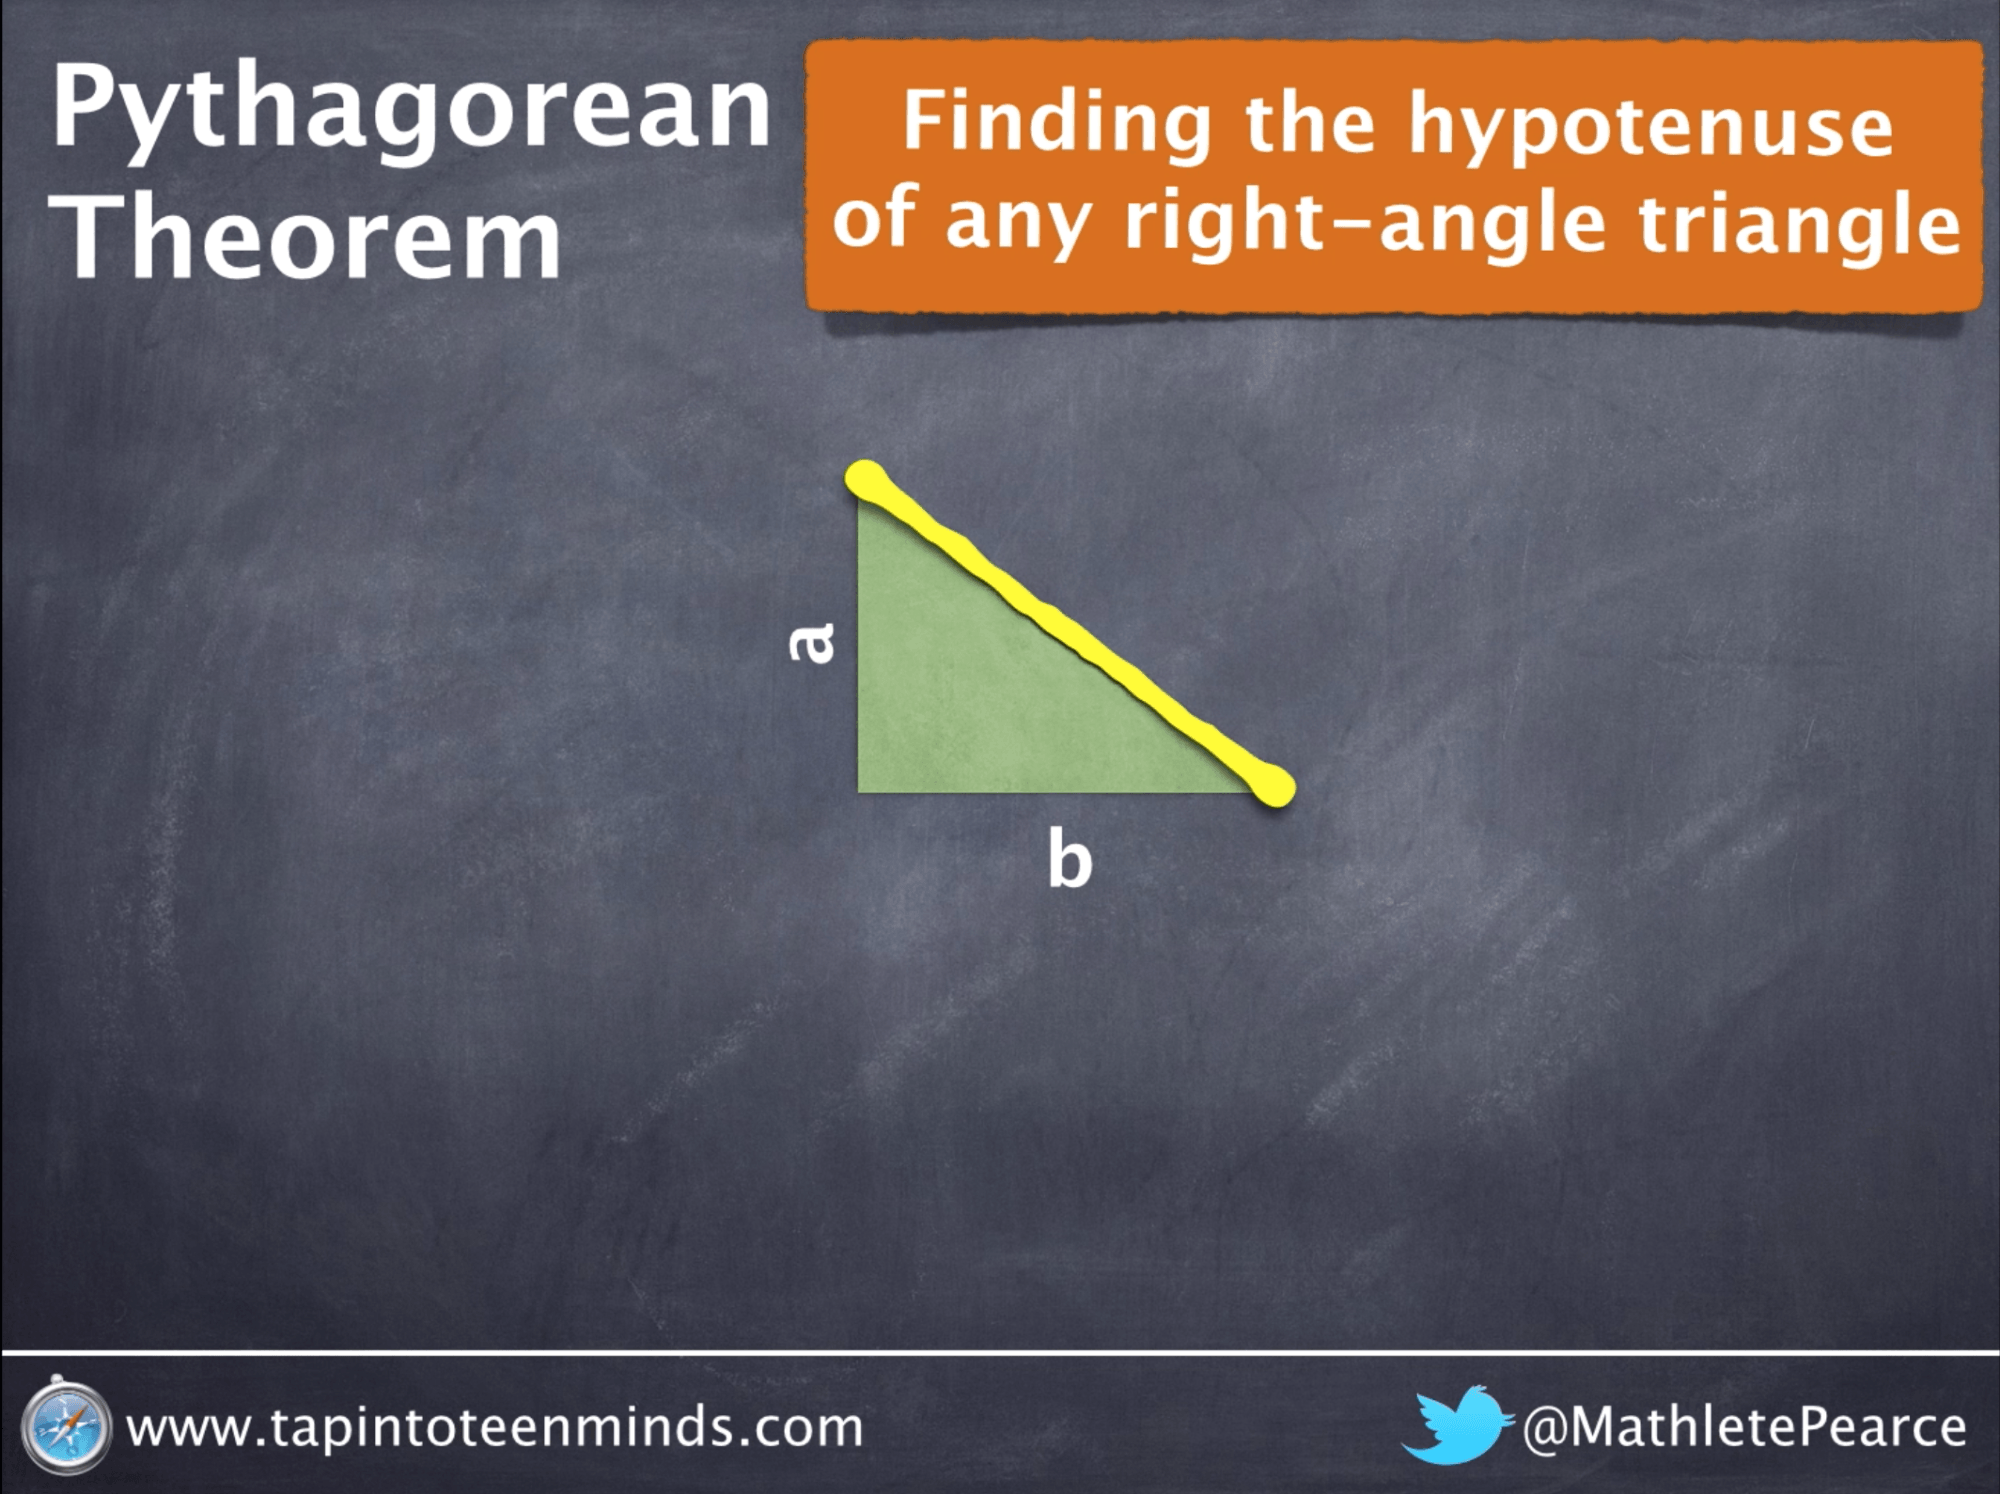 describing the concept of the hypotenuse in any right angled triangle The teaching aid year level/target class: year 9, stage 5 (stage 51 and as an introductory revision lesson for stages 52/53) aim: for students to identify understand and develop the concept of the opposite side on a right-angled triangle for any given angle in any orientation.